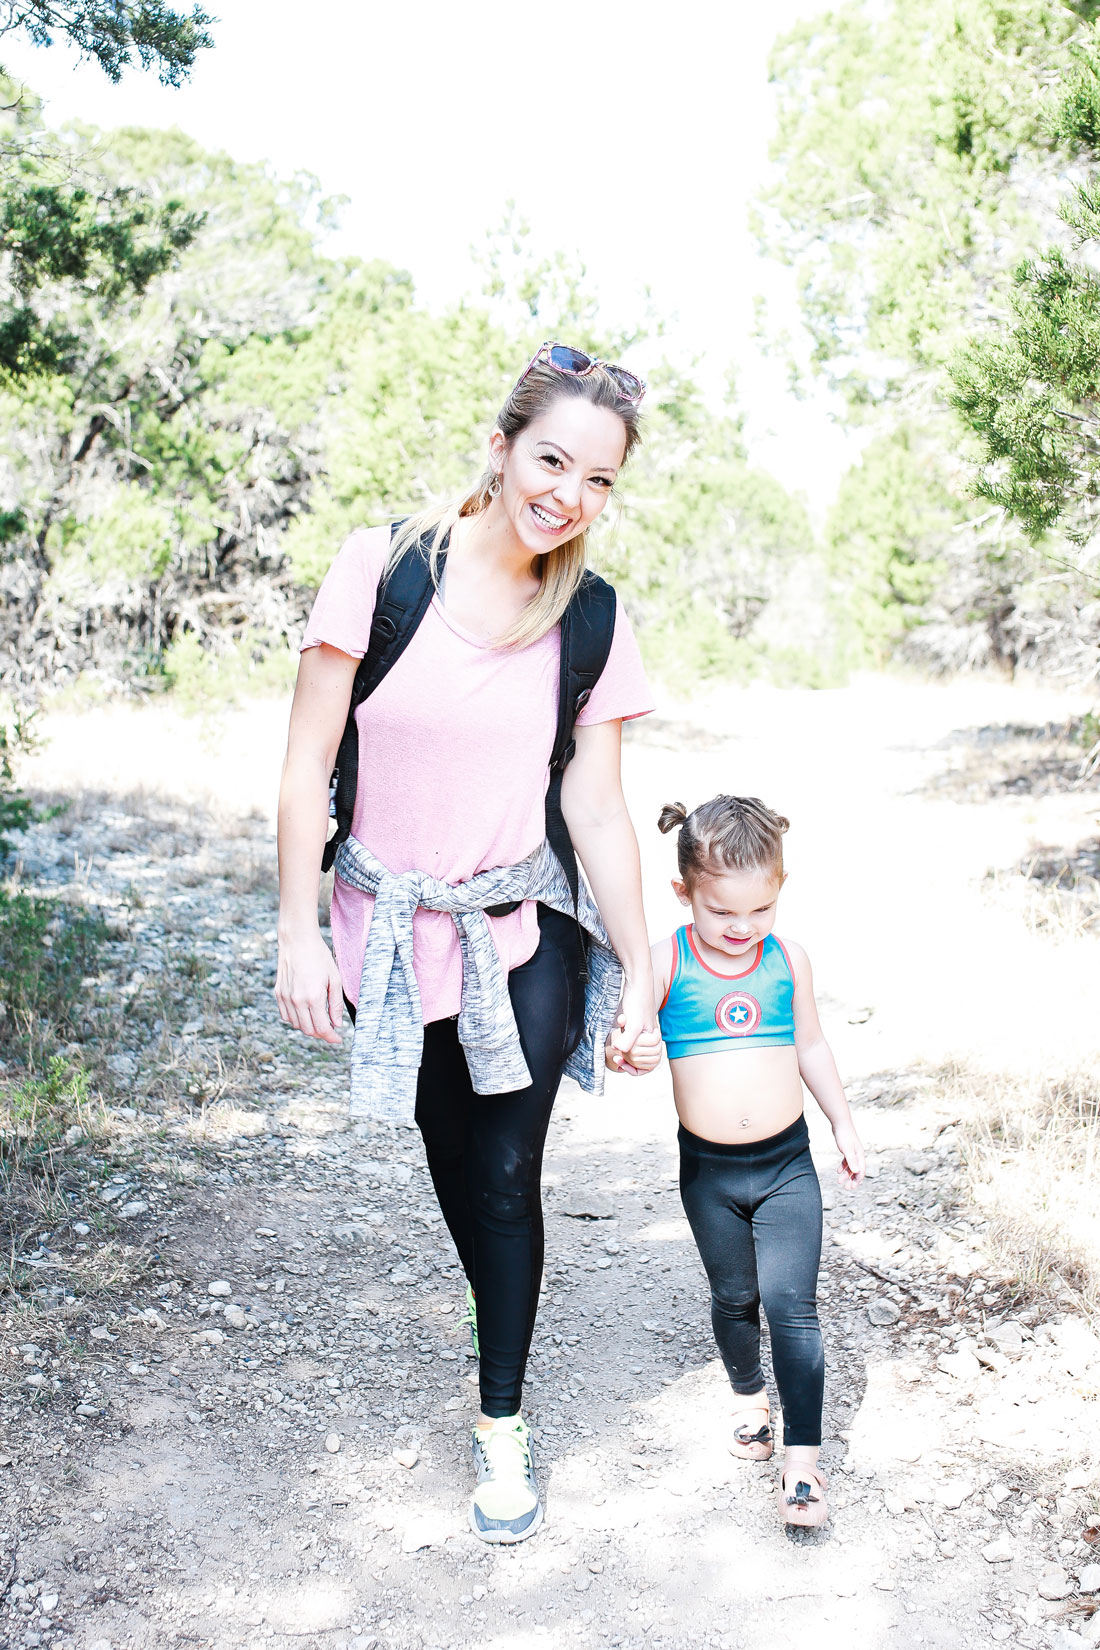 5 important reasons to hike with your kids and how to make it even more fun for them.